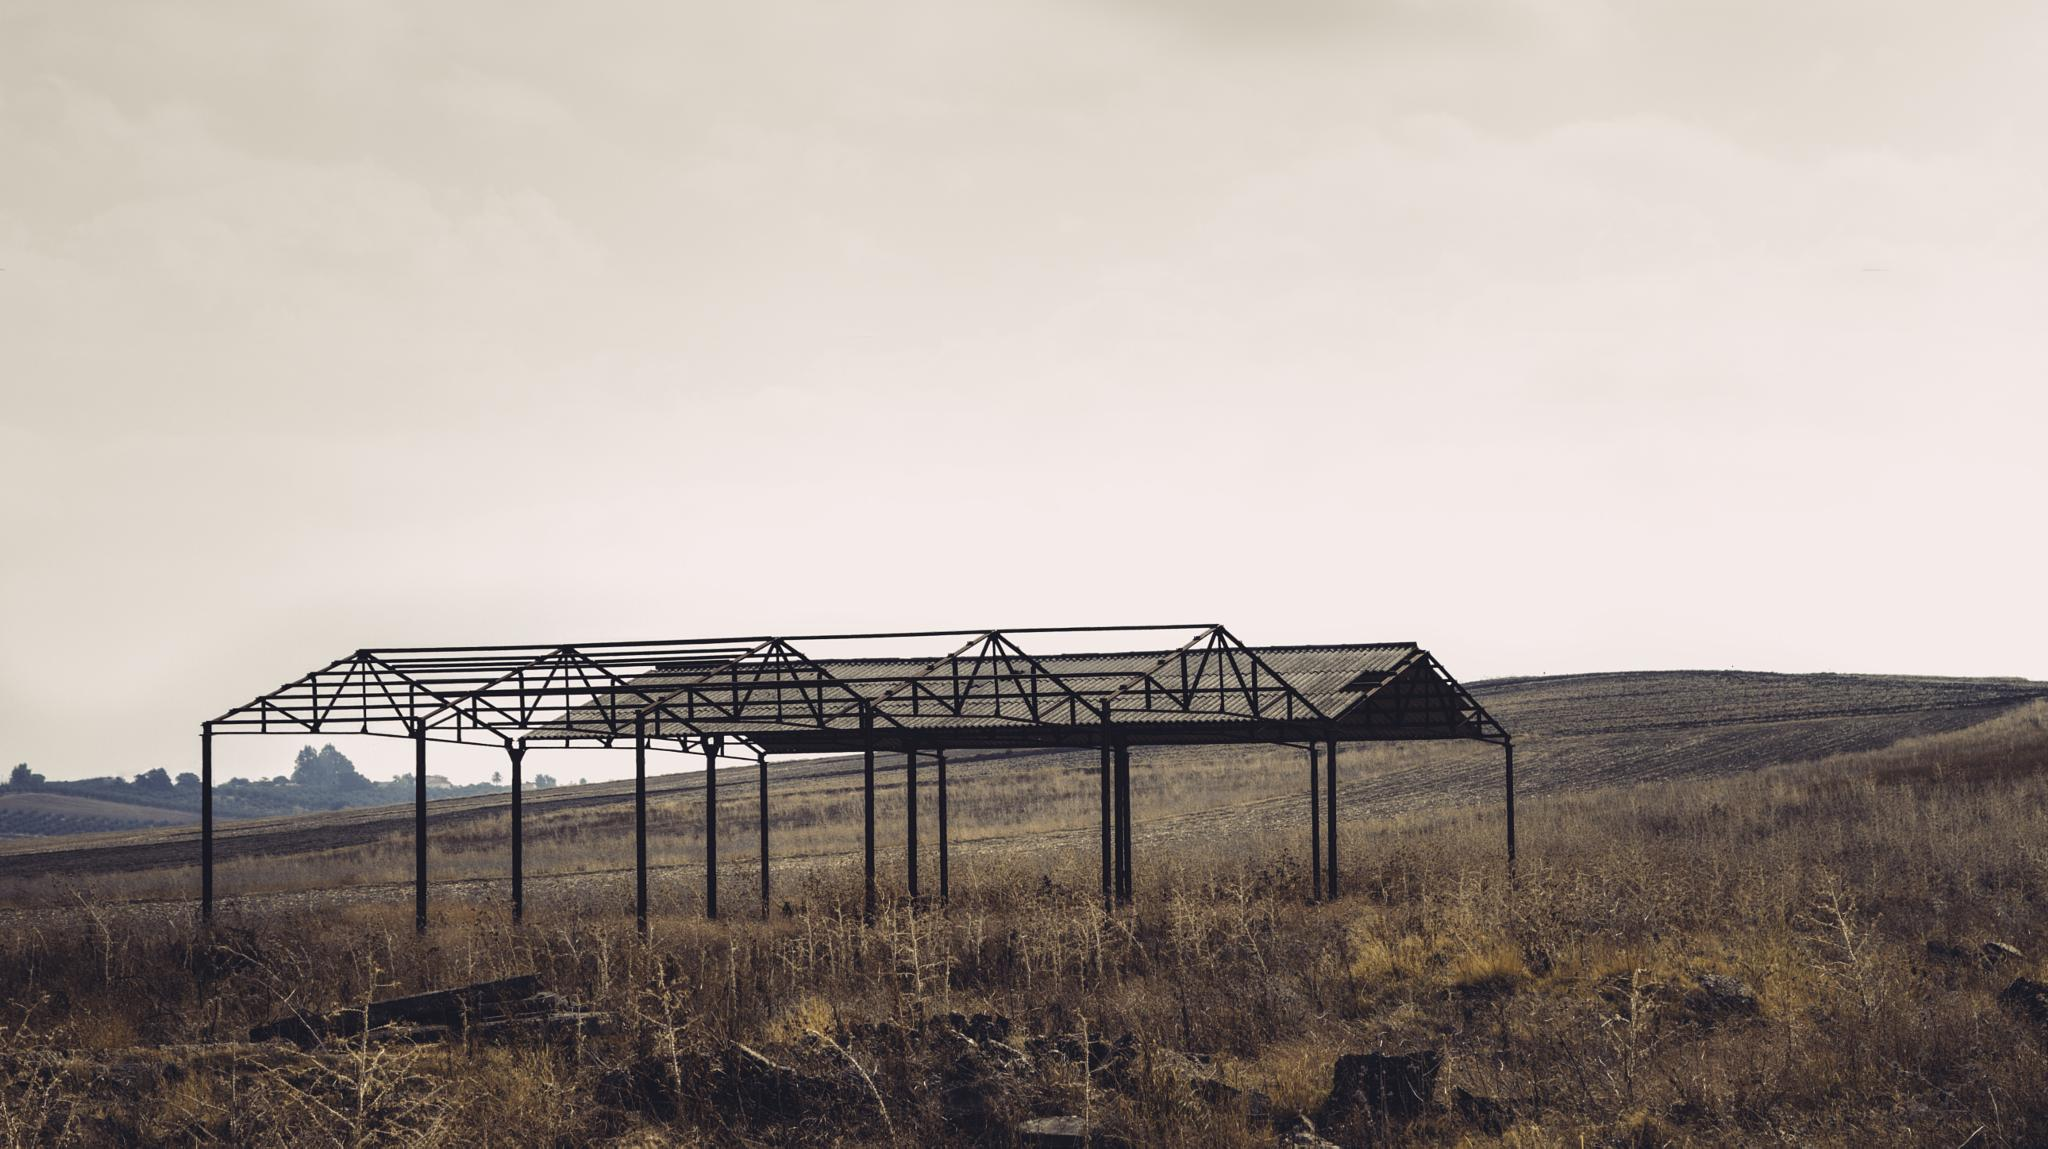 Farm Structure by declanfranklin